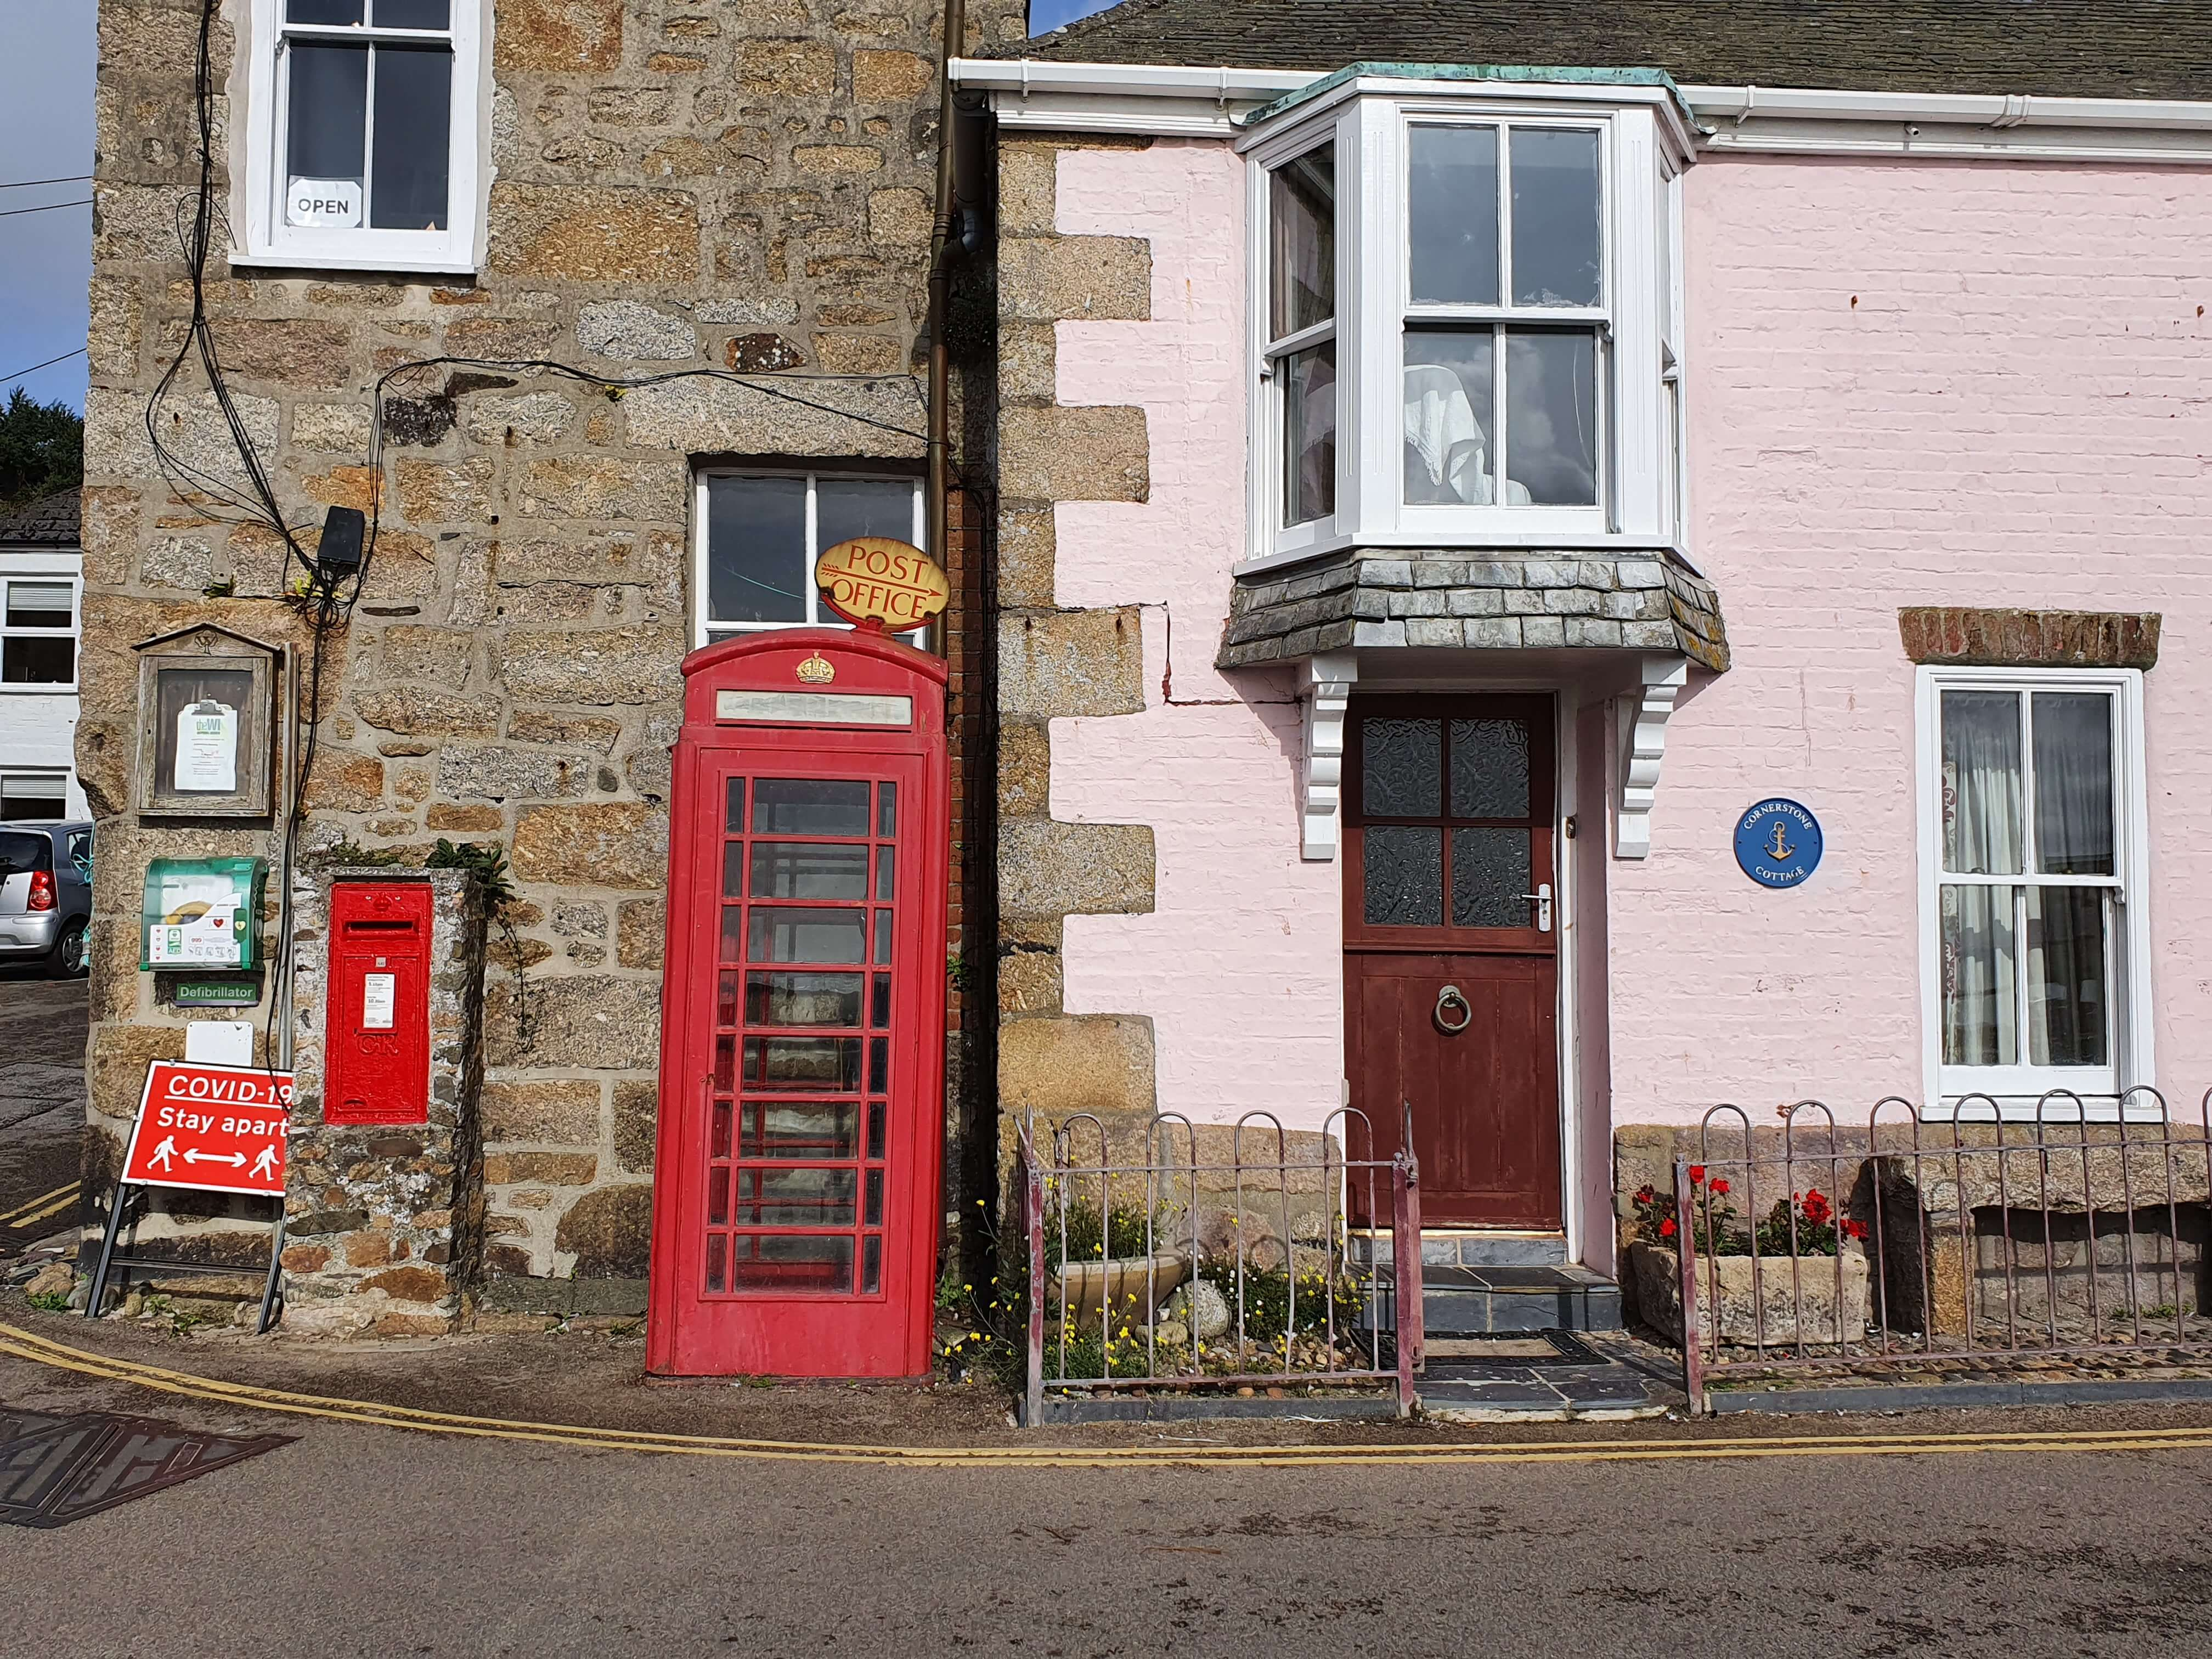 A bright red phone box in front of a pink cottage